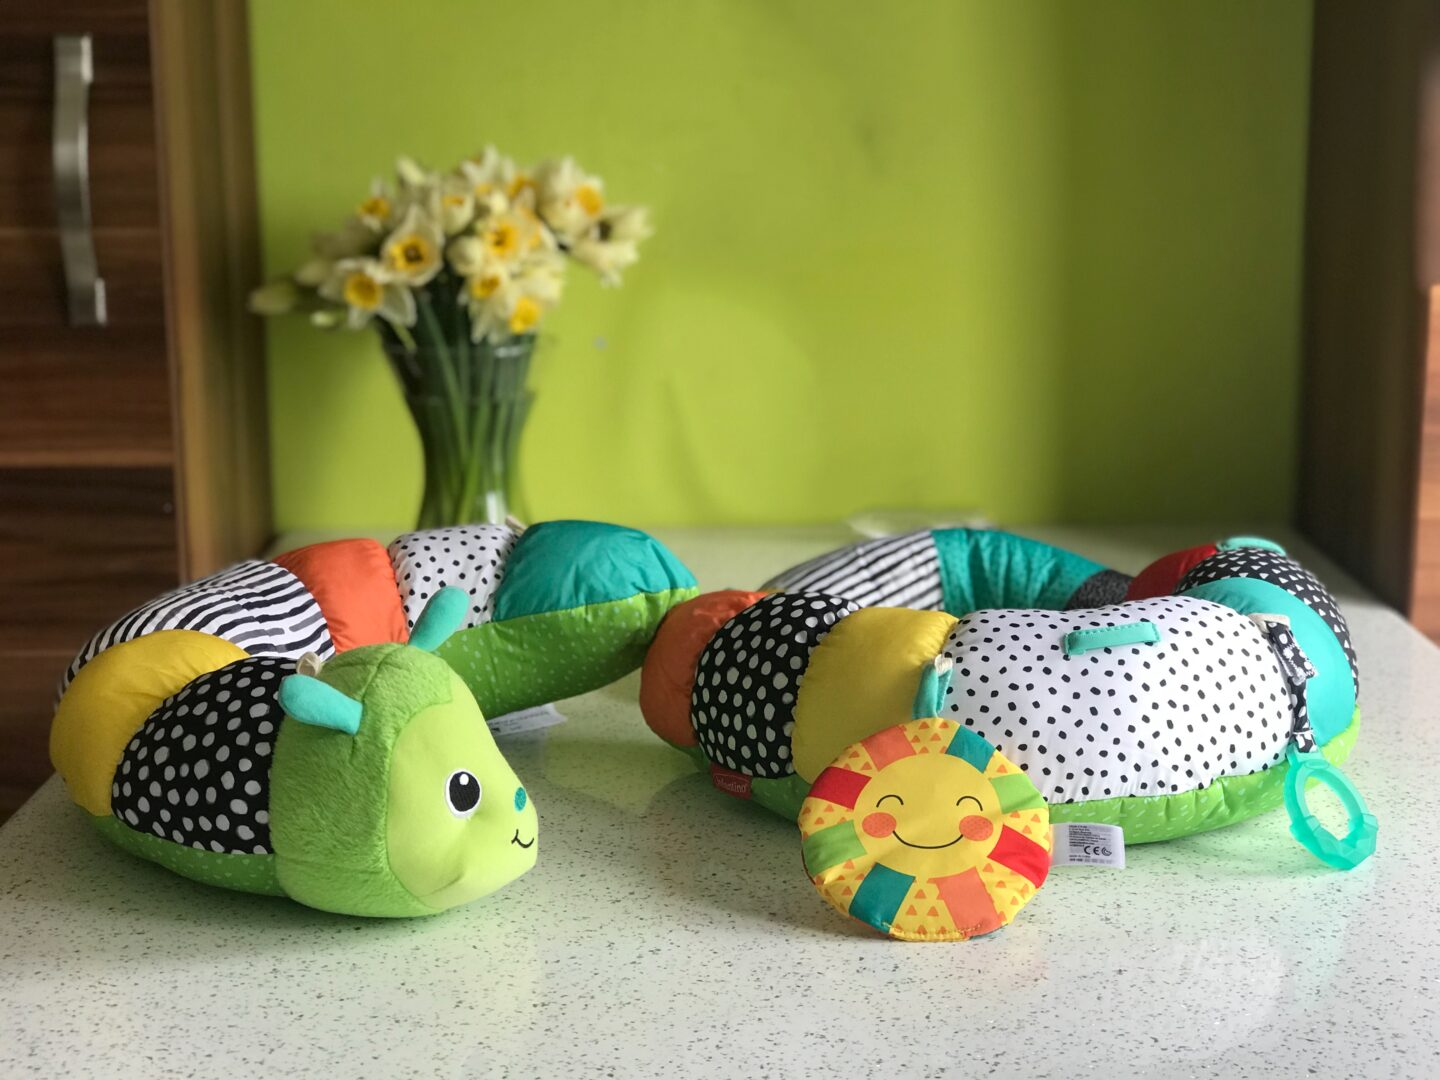 The Infantino Prop-a-Pillar tummy time support placed on kitchen table with daffodils in a vase in the background